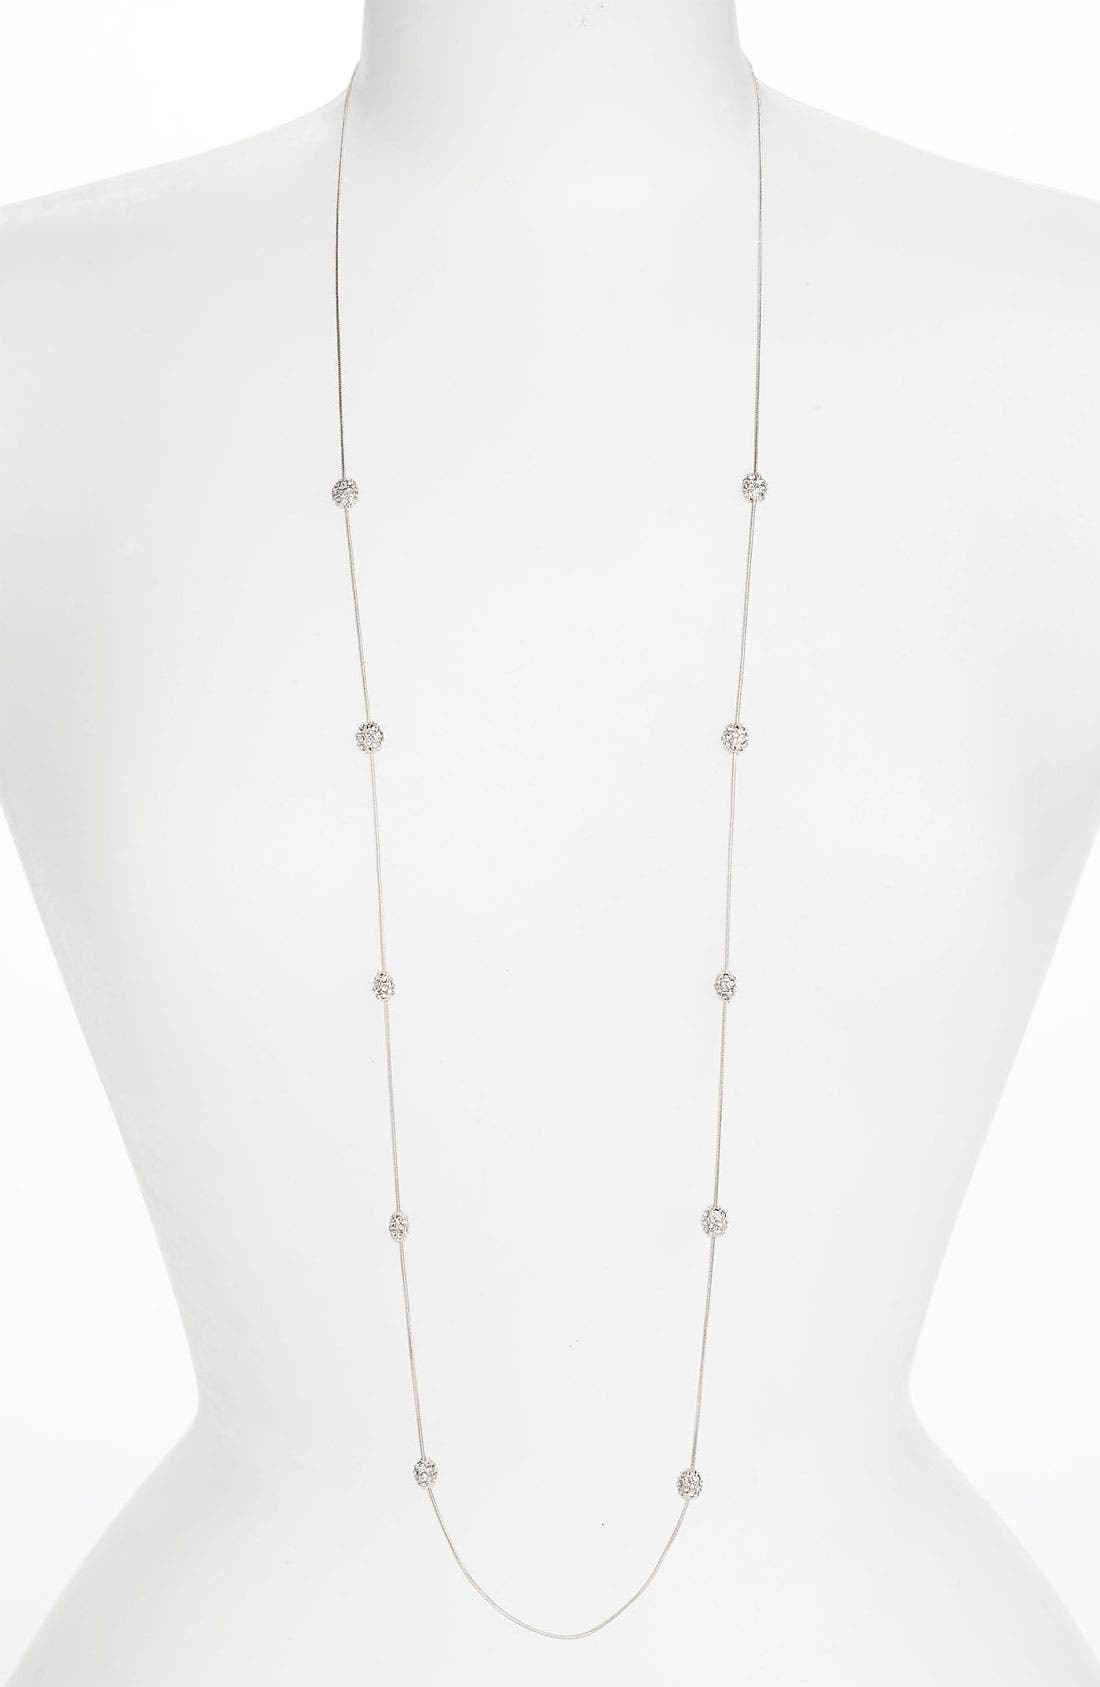 Alternate Image 1 Selected - Anne Klein 'Fireball' Long Illusion Necklace